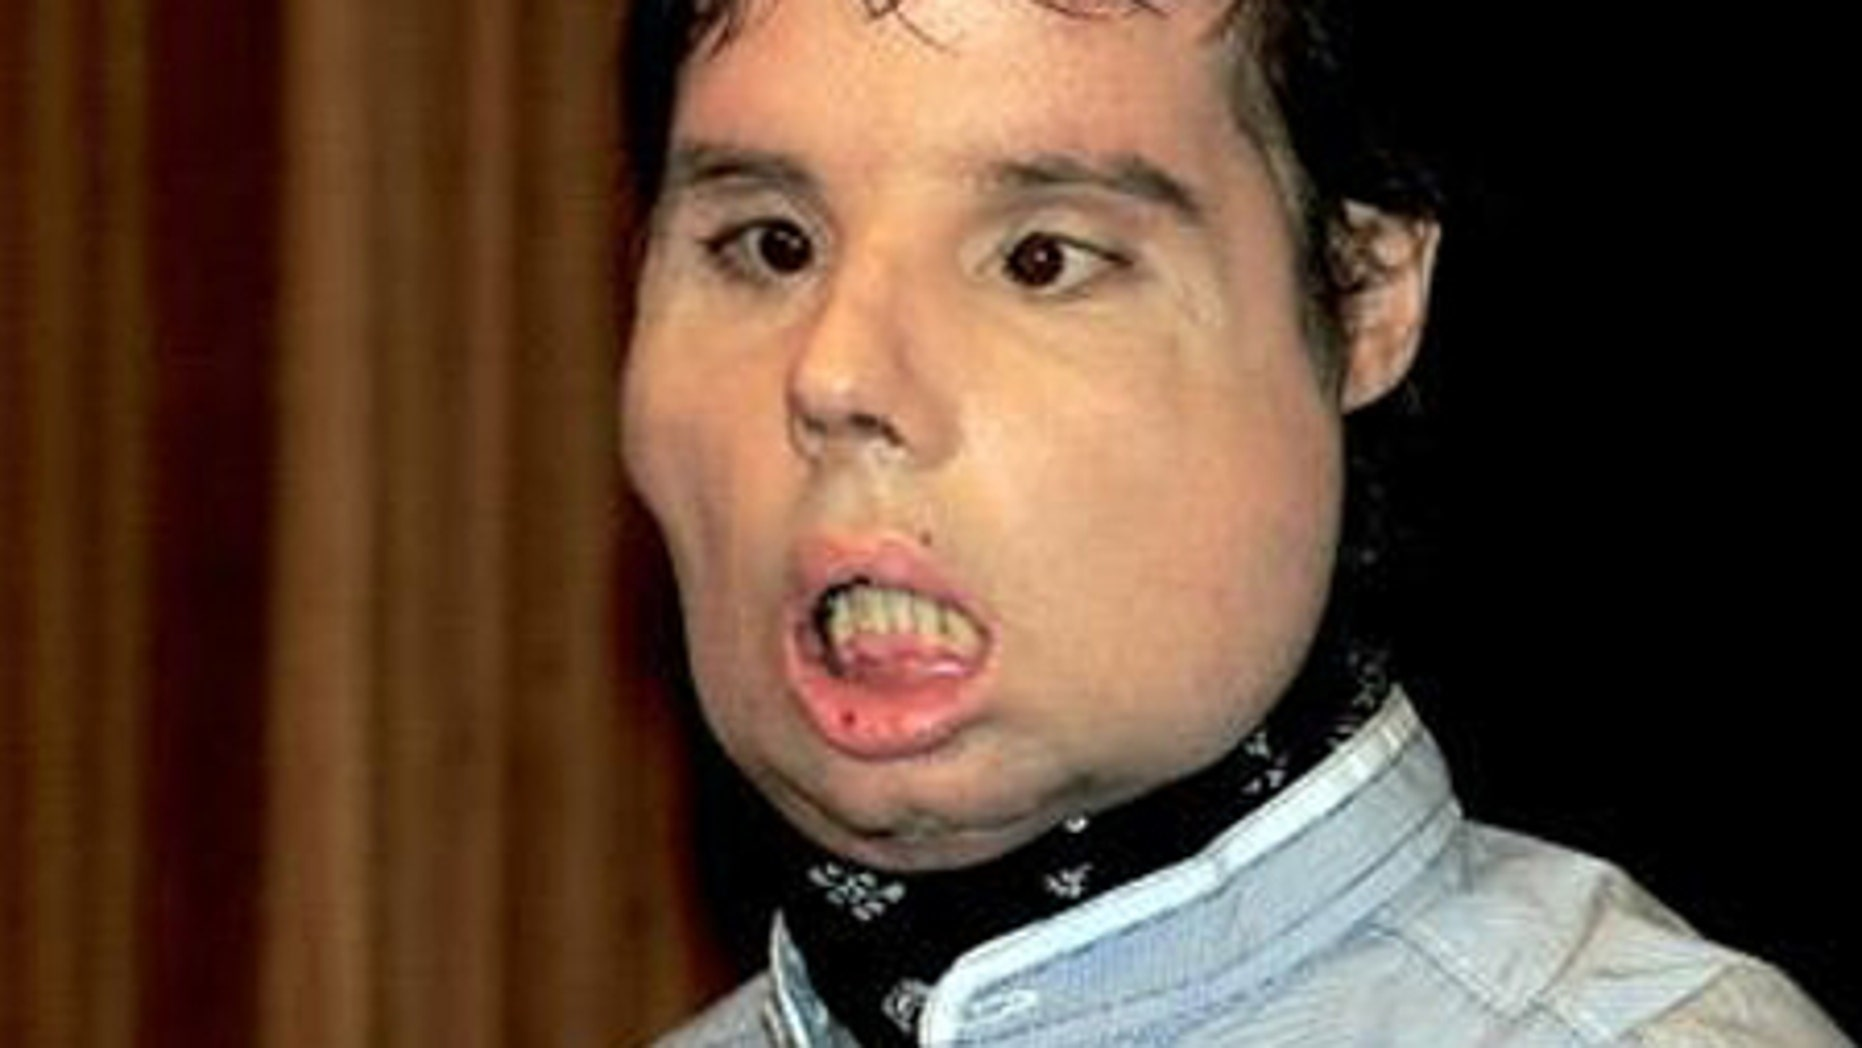 foto World's first full face transplant